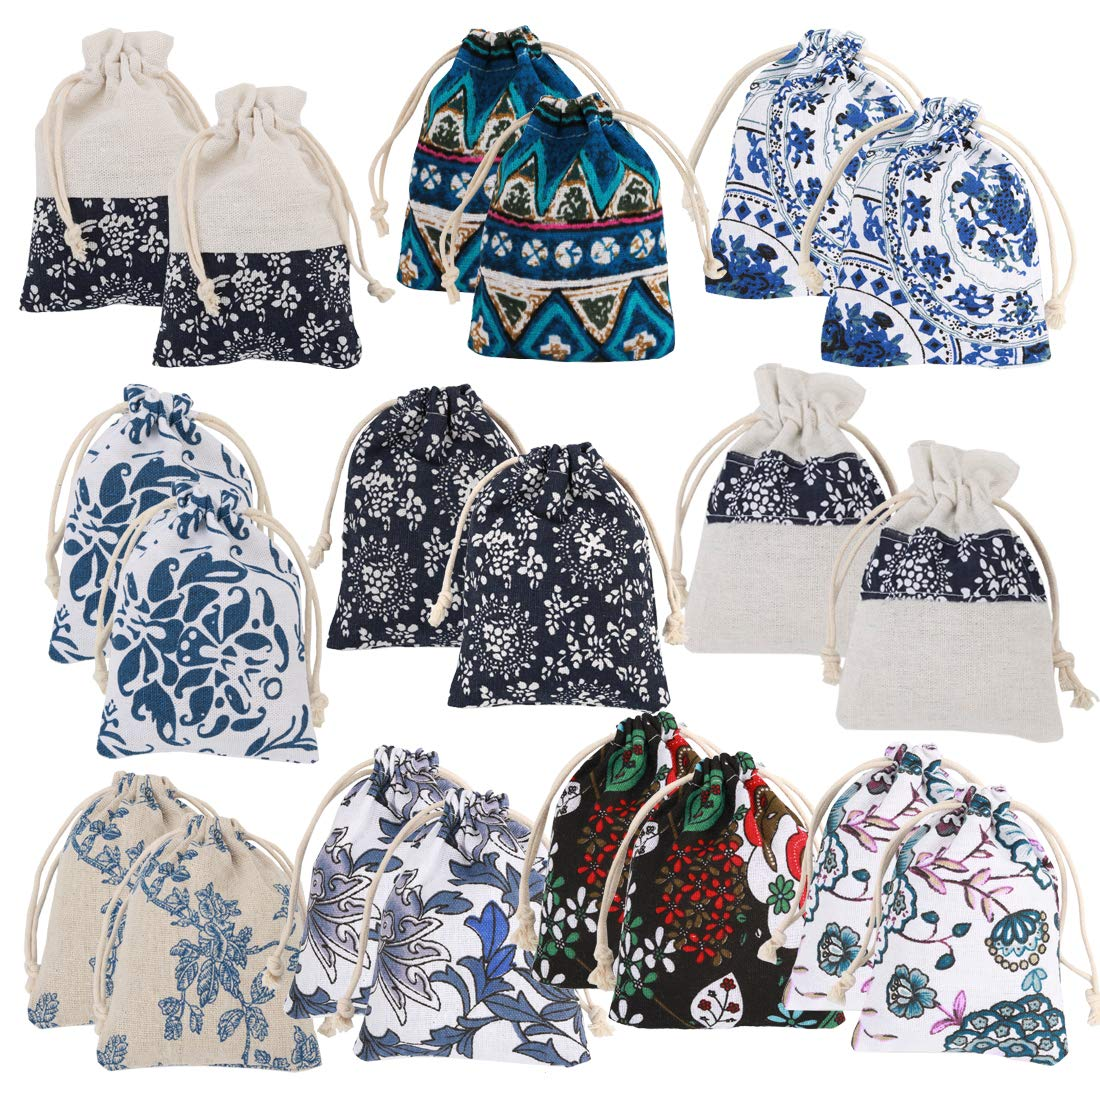 kilofly 20pc Chinese Jewelry Coin Purse Pouch Floral Print Drawstring Gift Bag TBA409set20